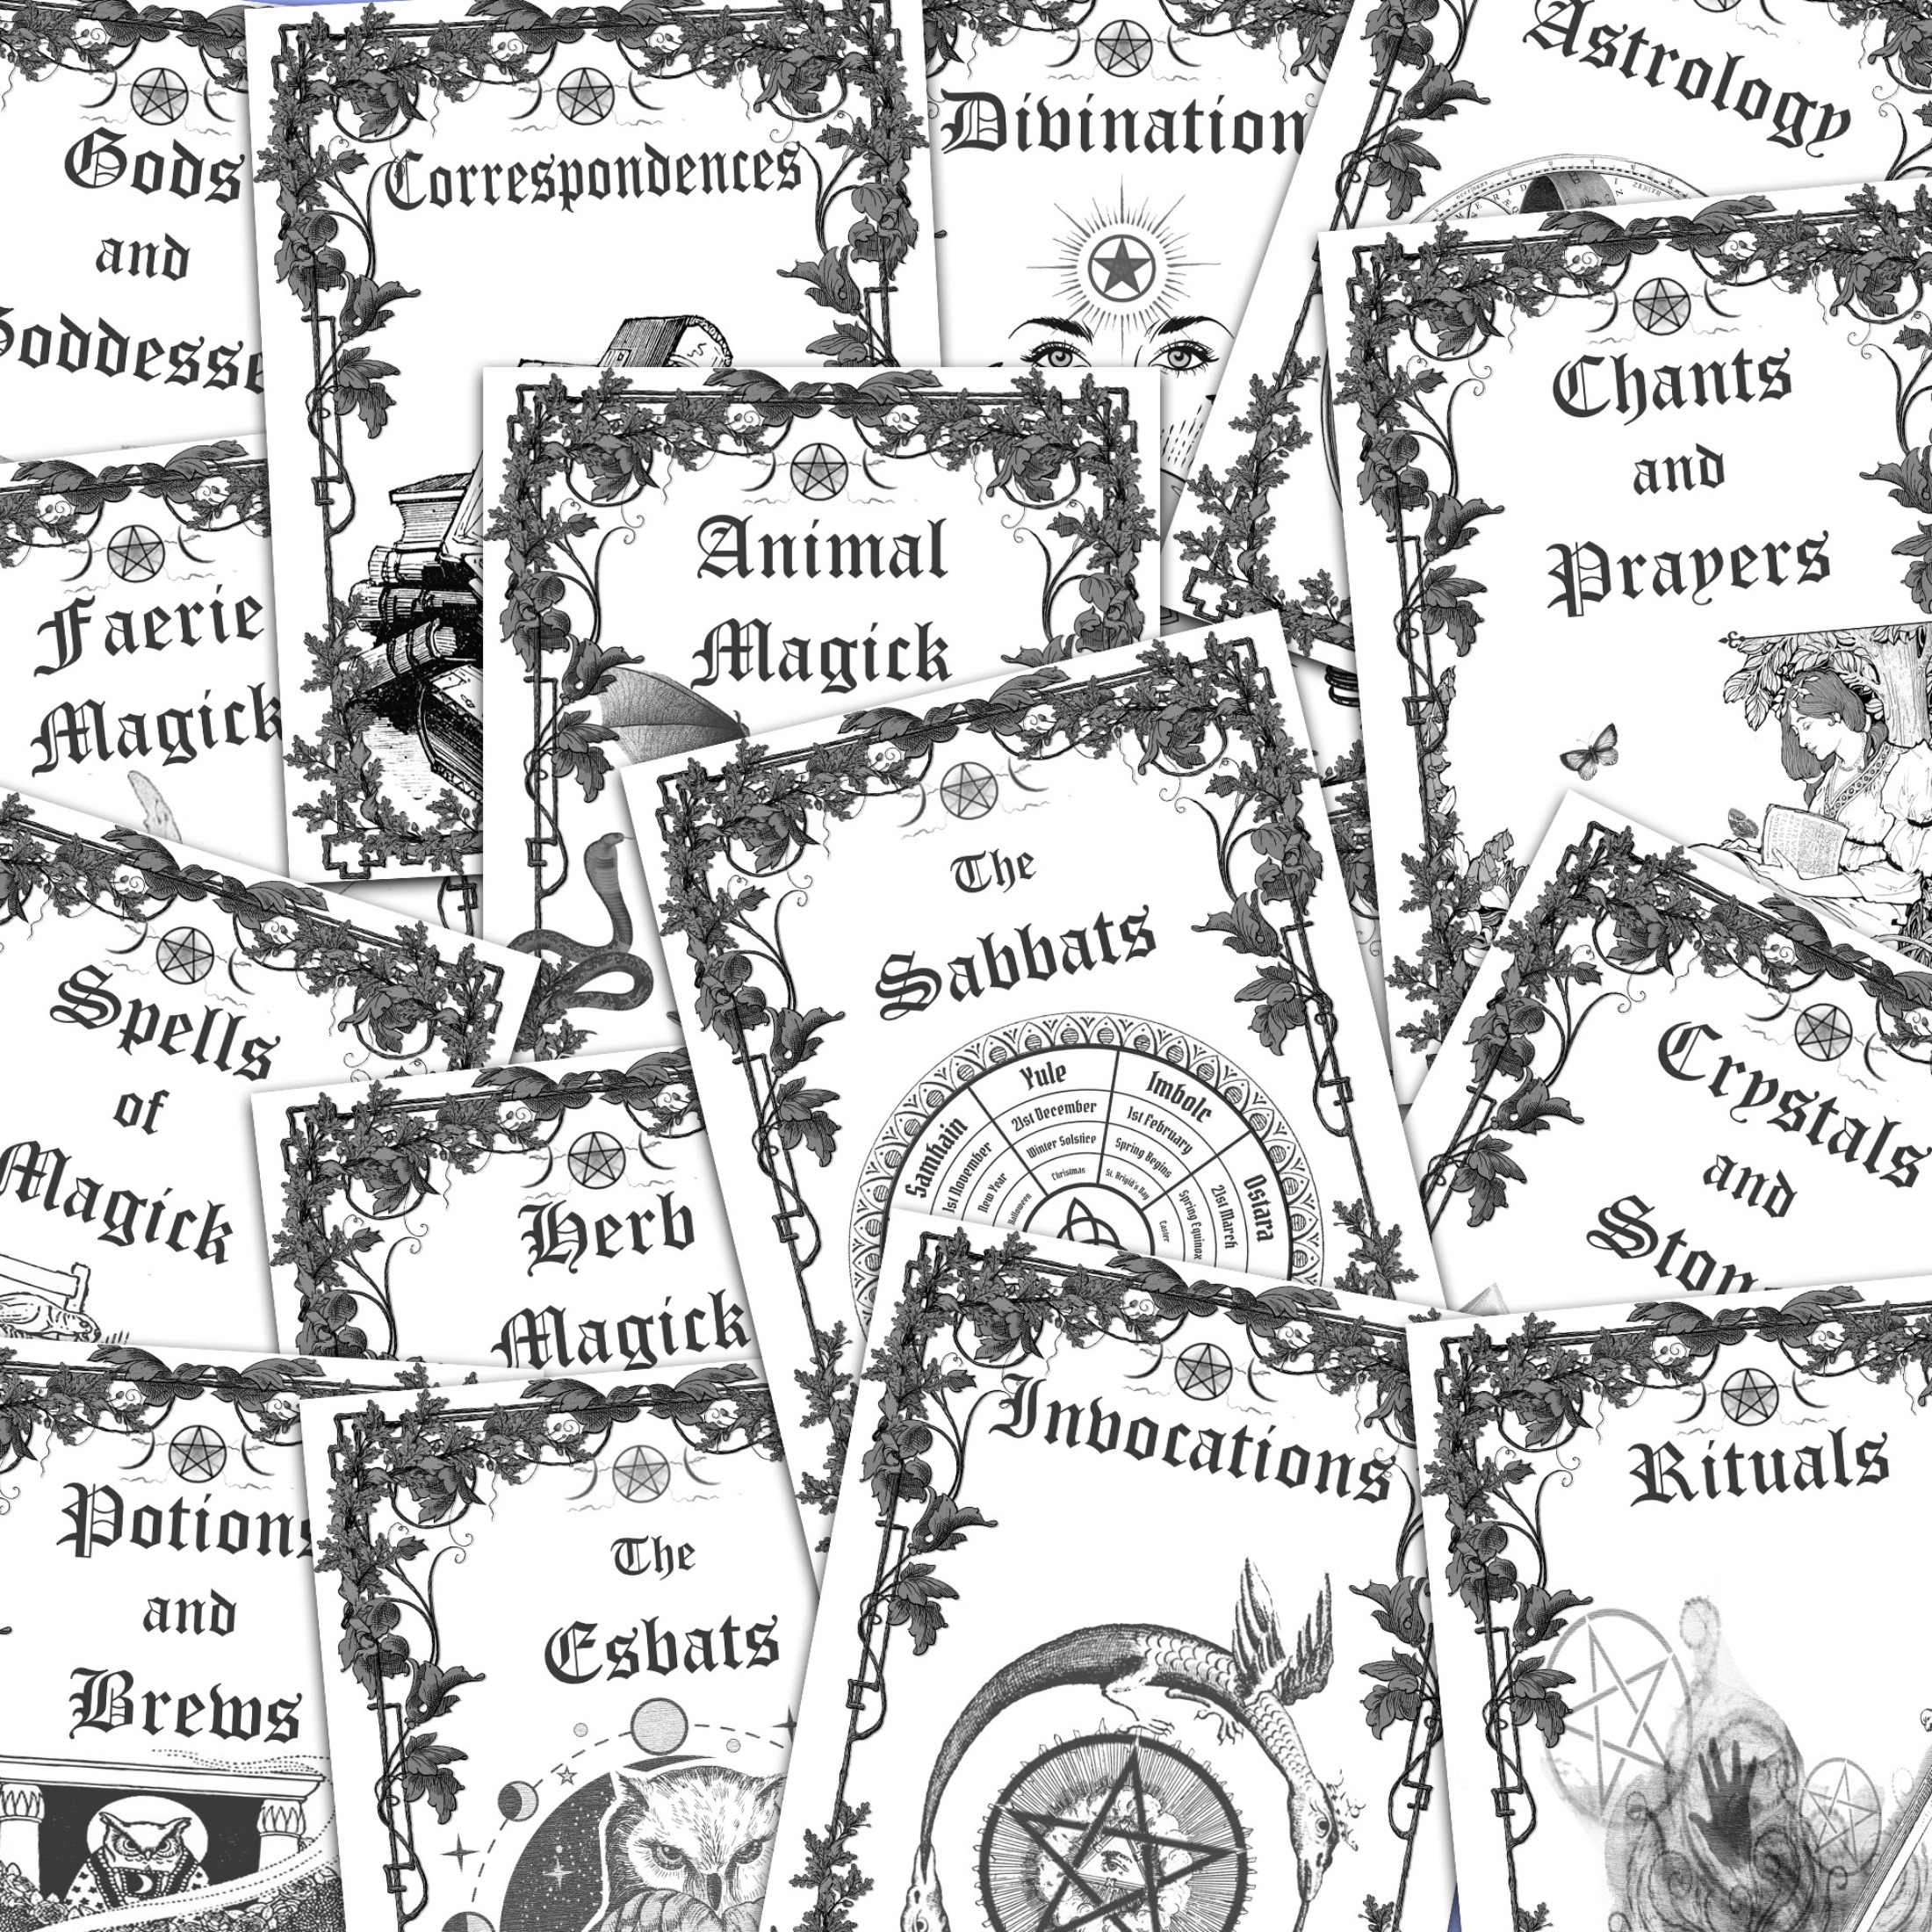 ALL 16 Book of Shadows TITLE PAGES